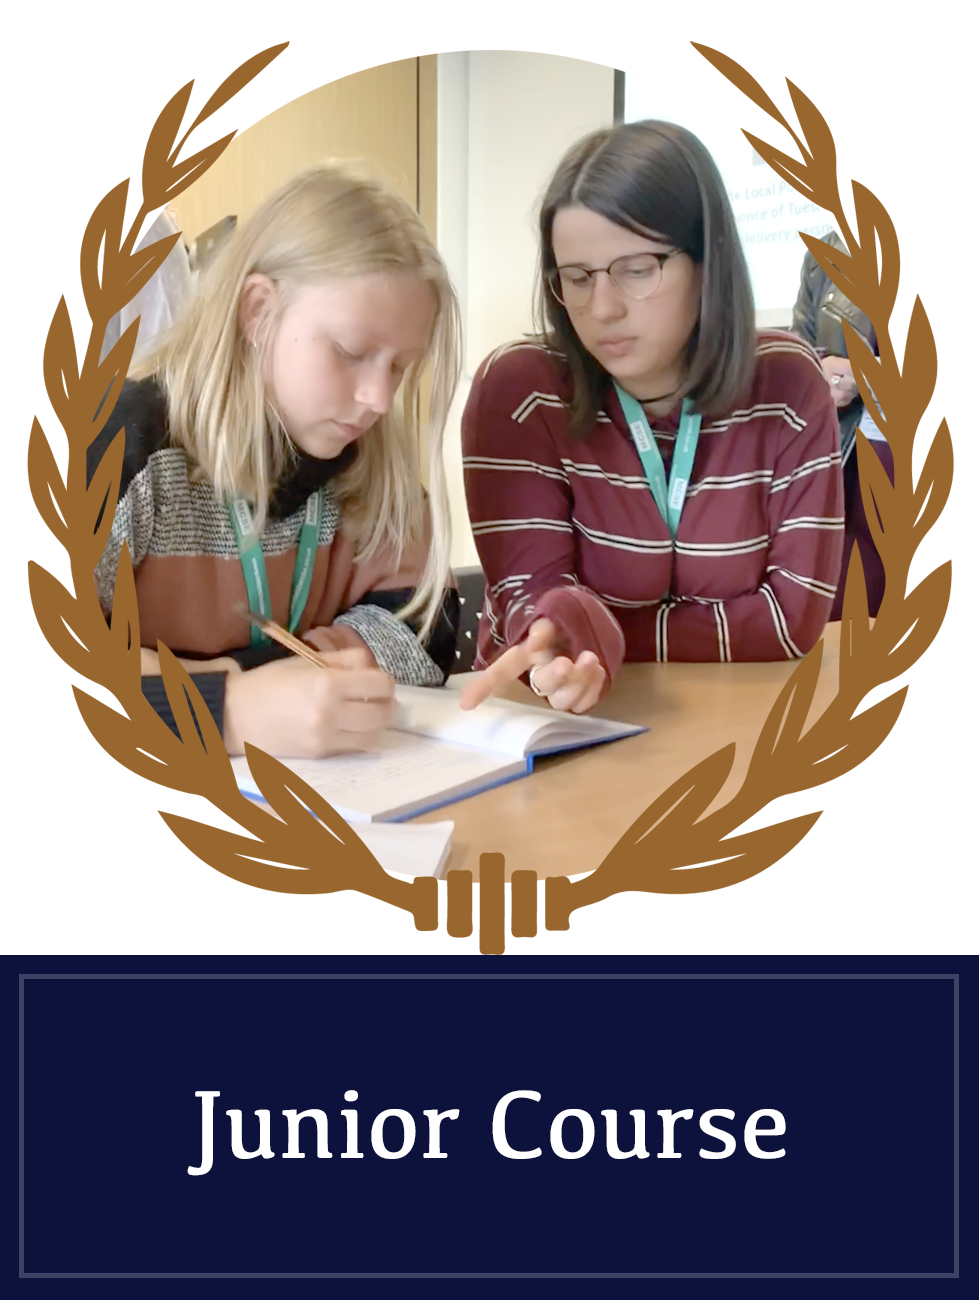 Junior Course